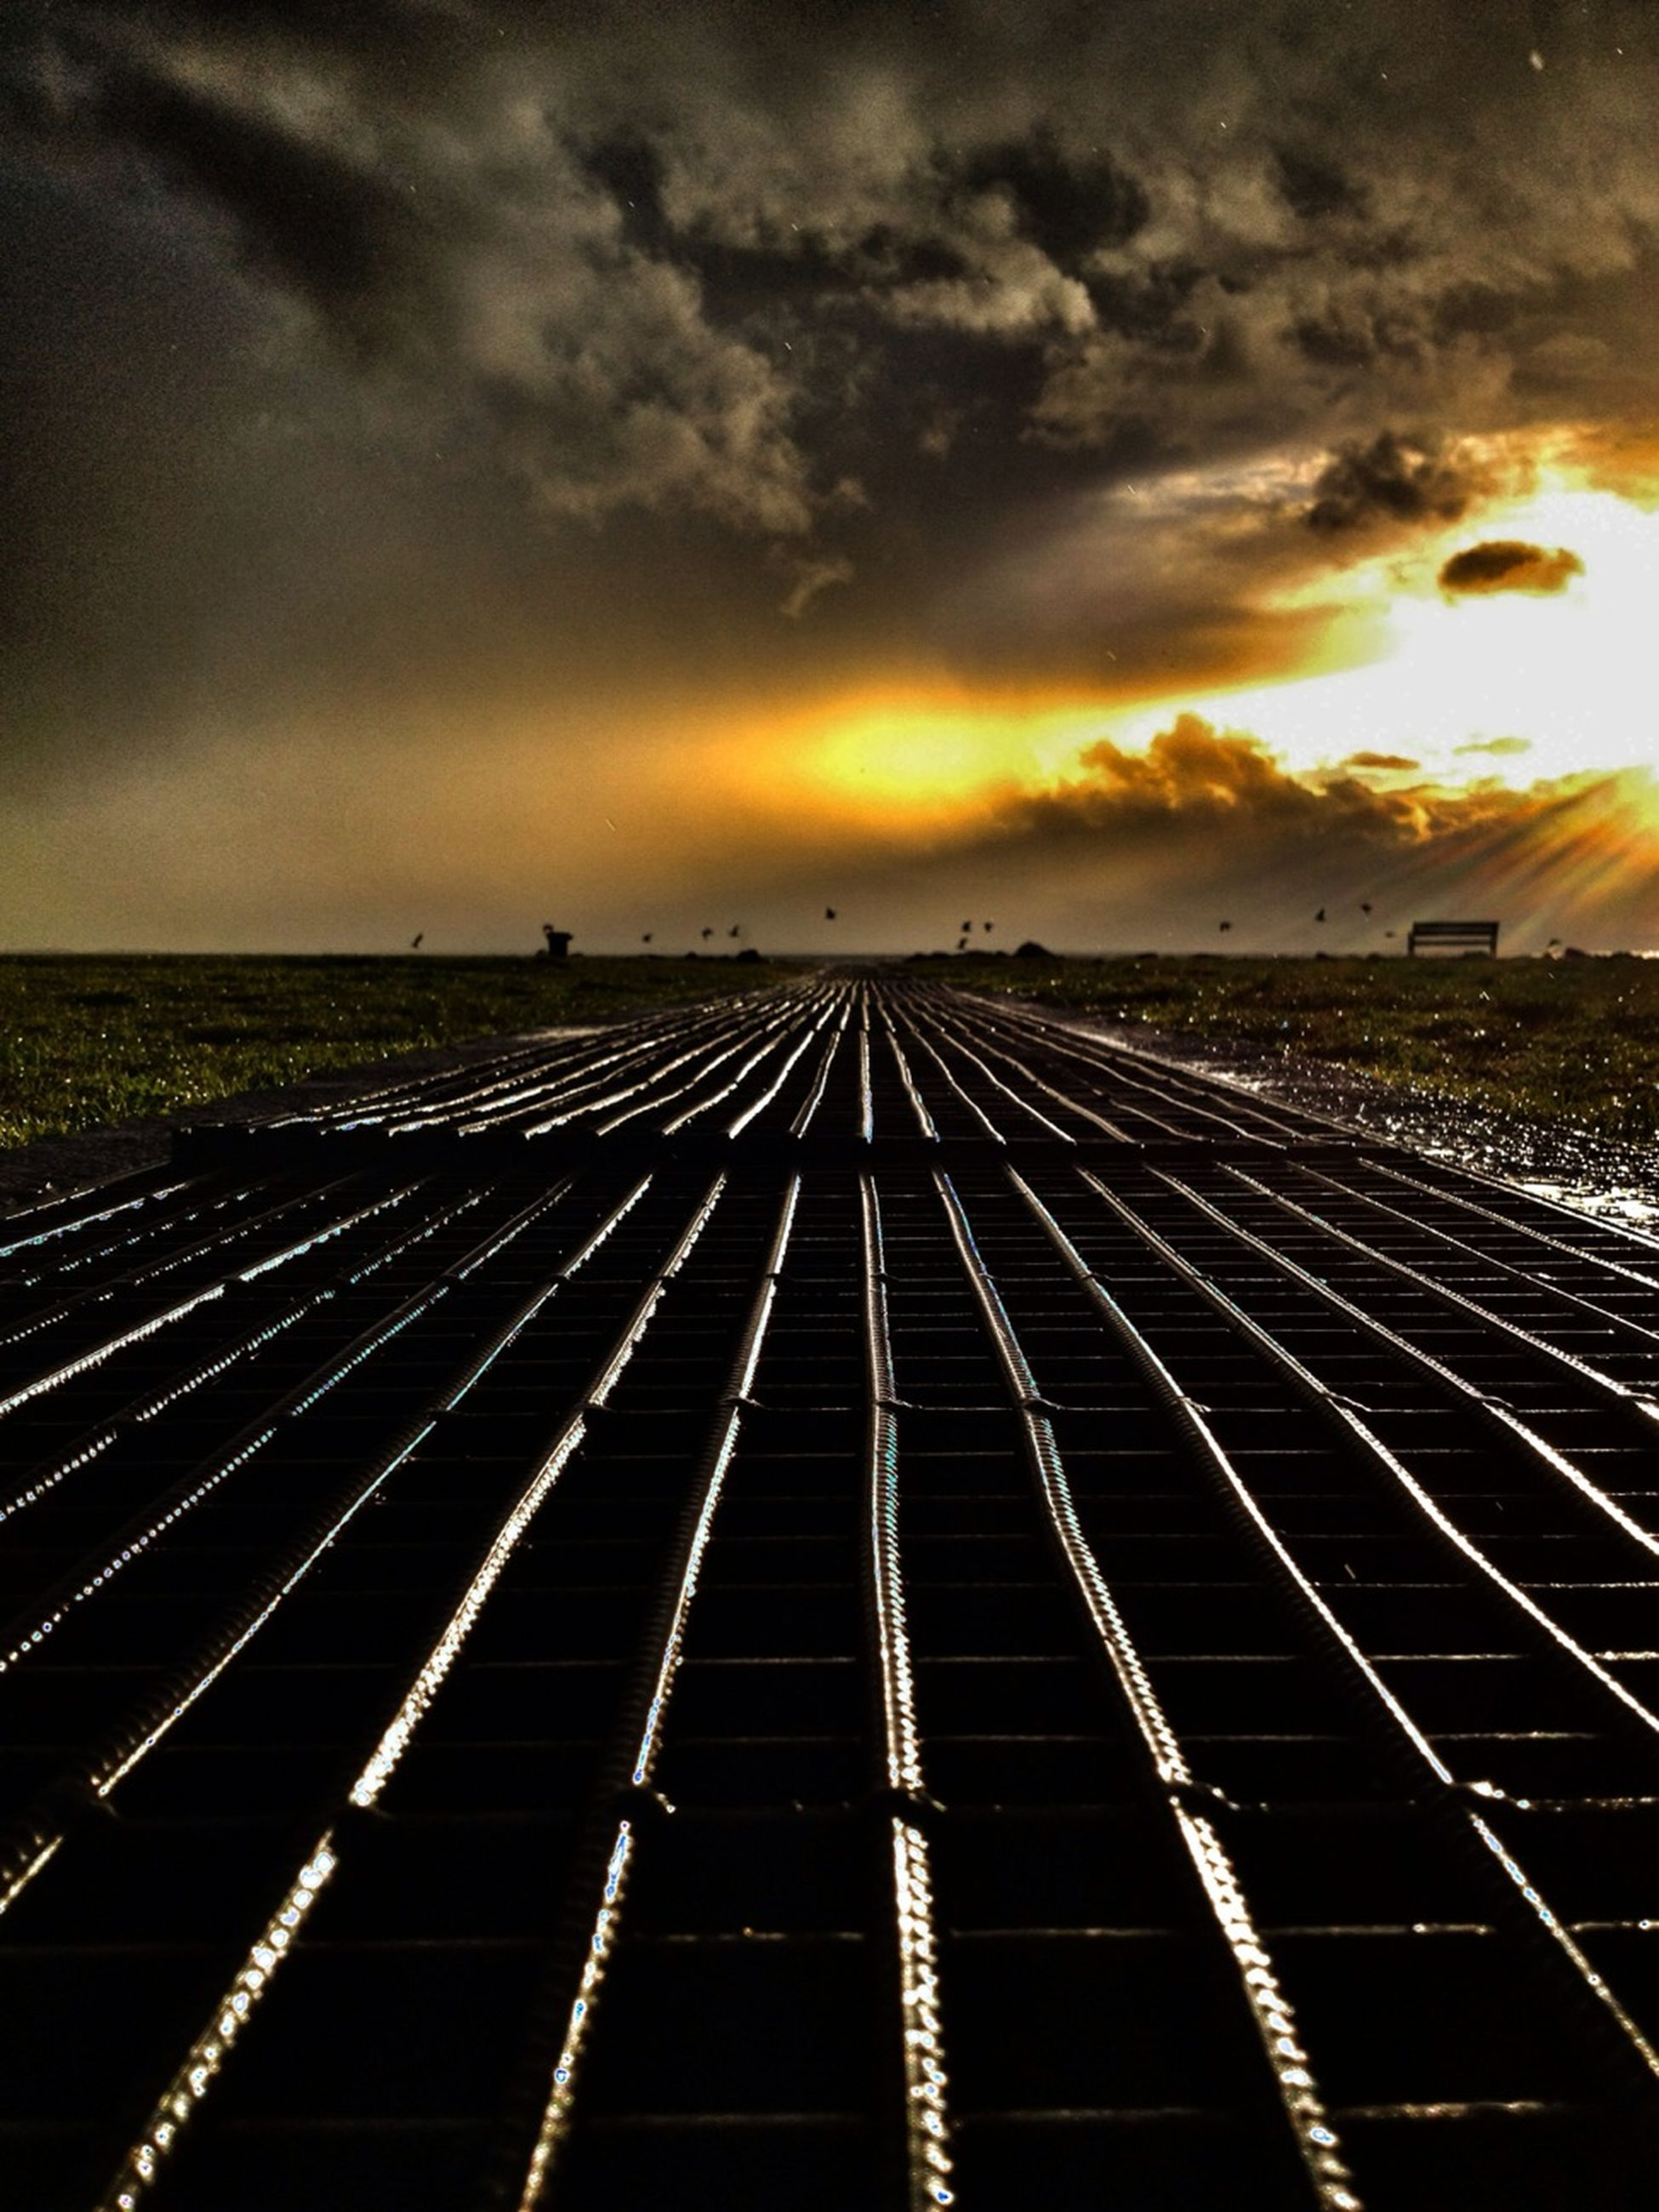 sunset, sky, cloud - sky, orange color, cloudy, dramatic sky, cloud, transportation, the way forward, diminishing perspective, weather, built structure, scenics, dusk, outdoors, beauty in nature, nature, no people, architecture, vanishing point